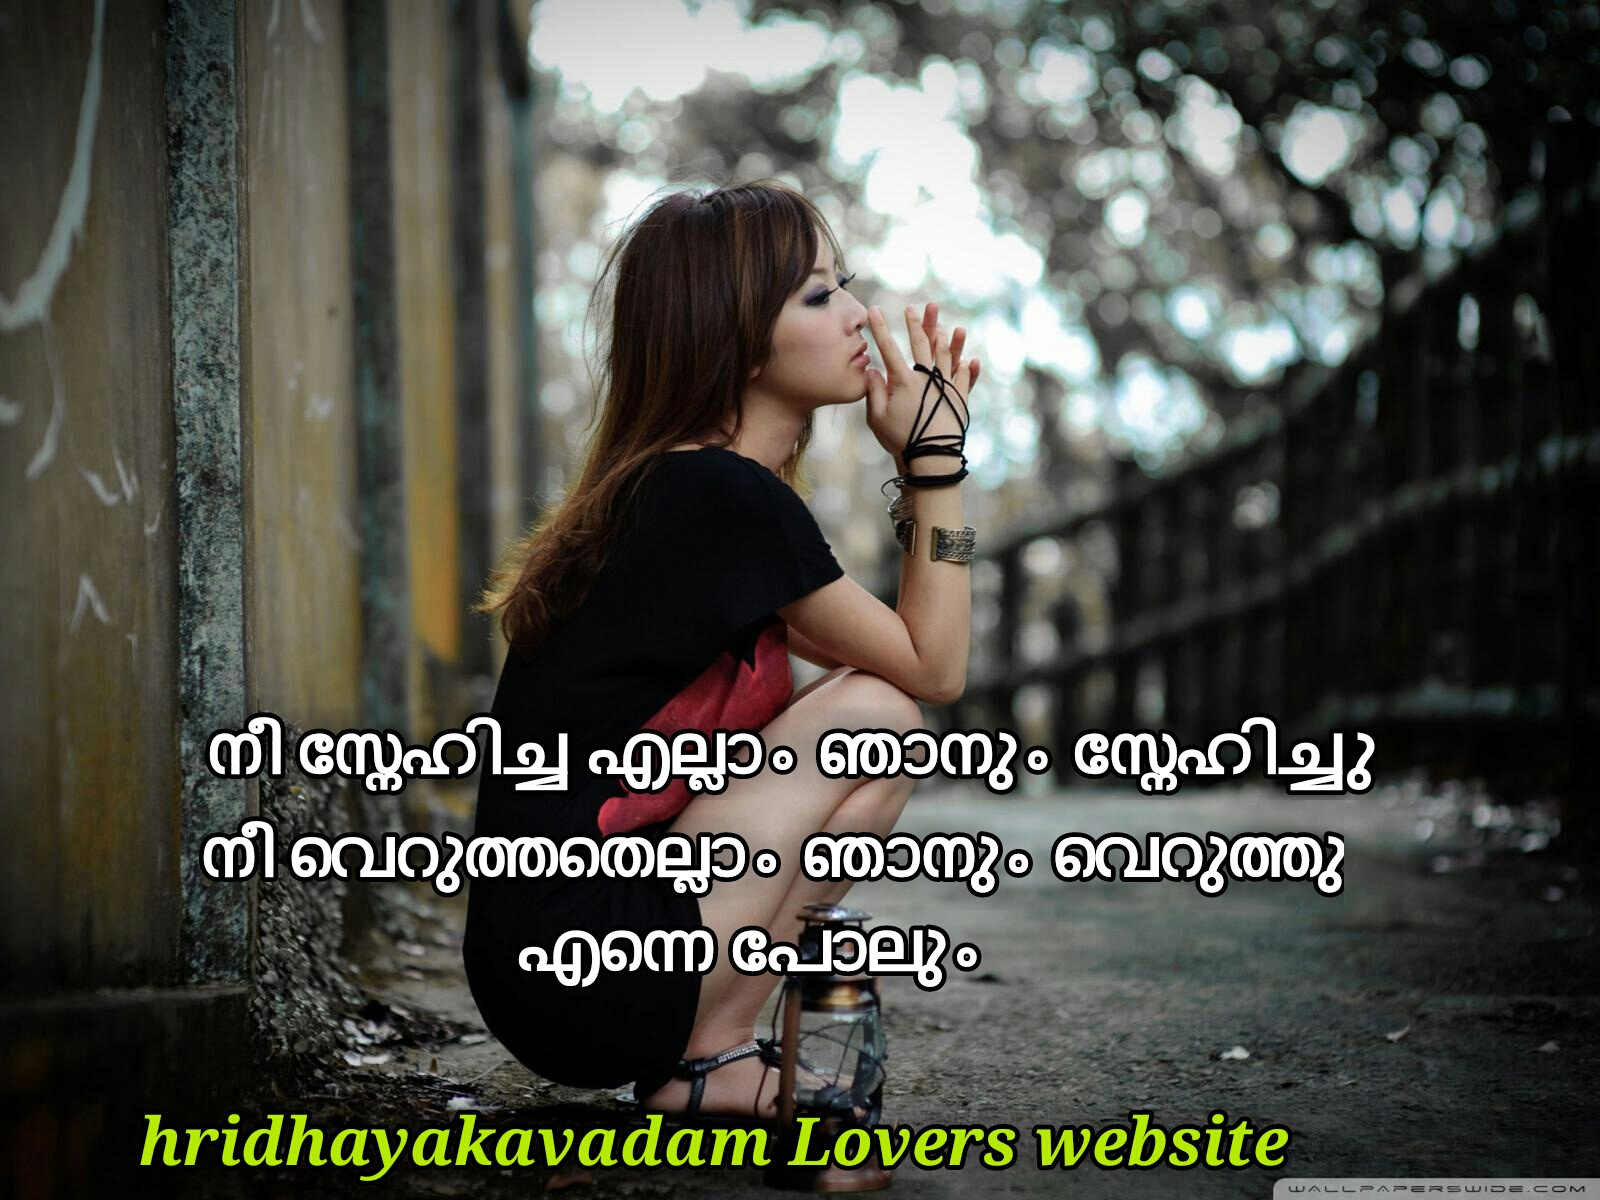 Malayalam Love Quotes Alluring Malayalam Love Quotes  Hridhayakavadam